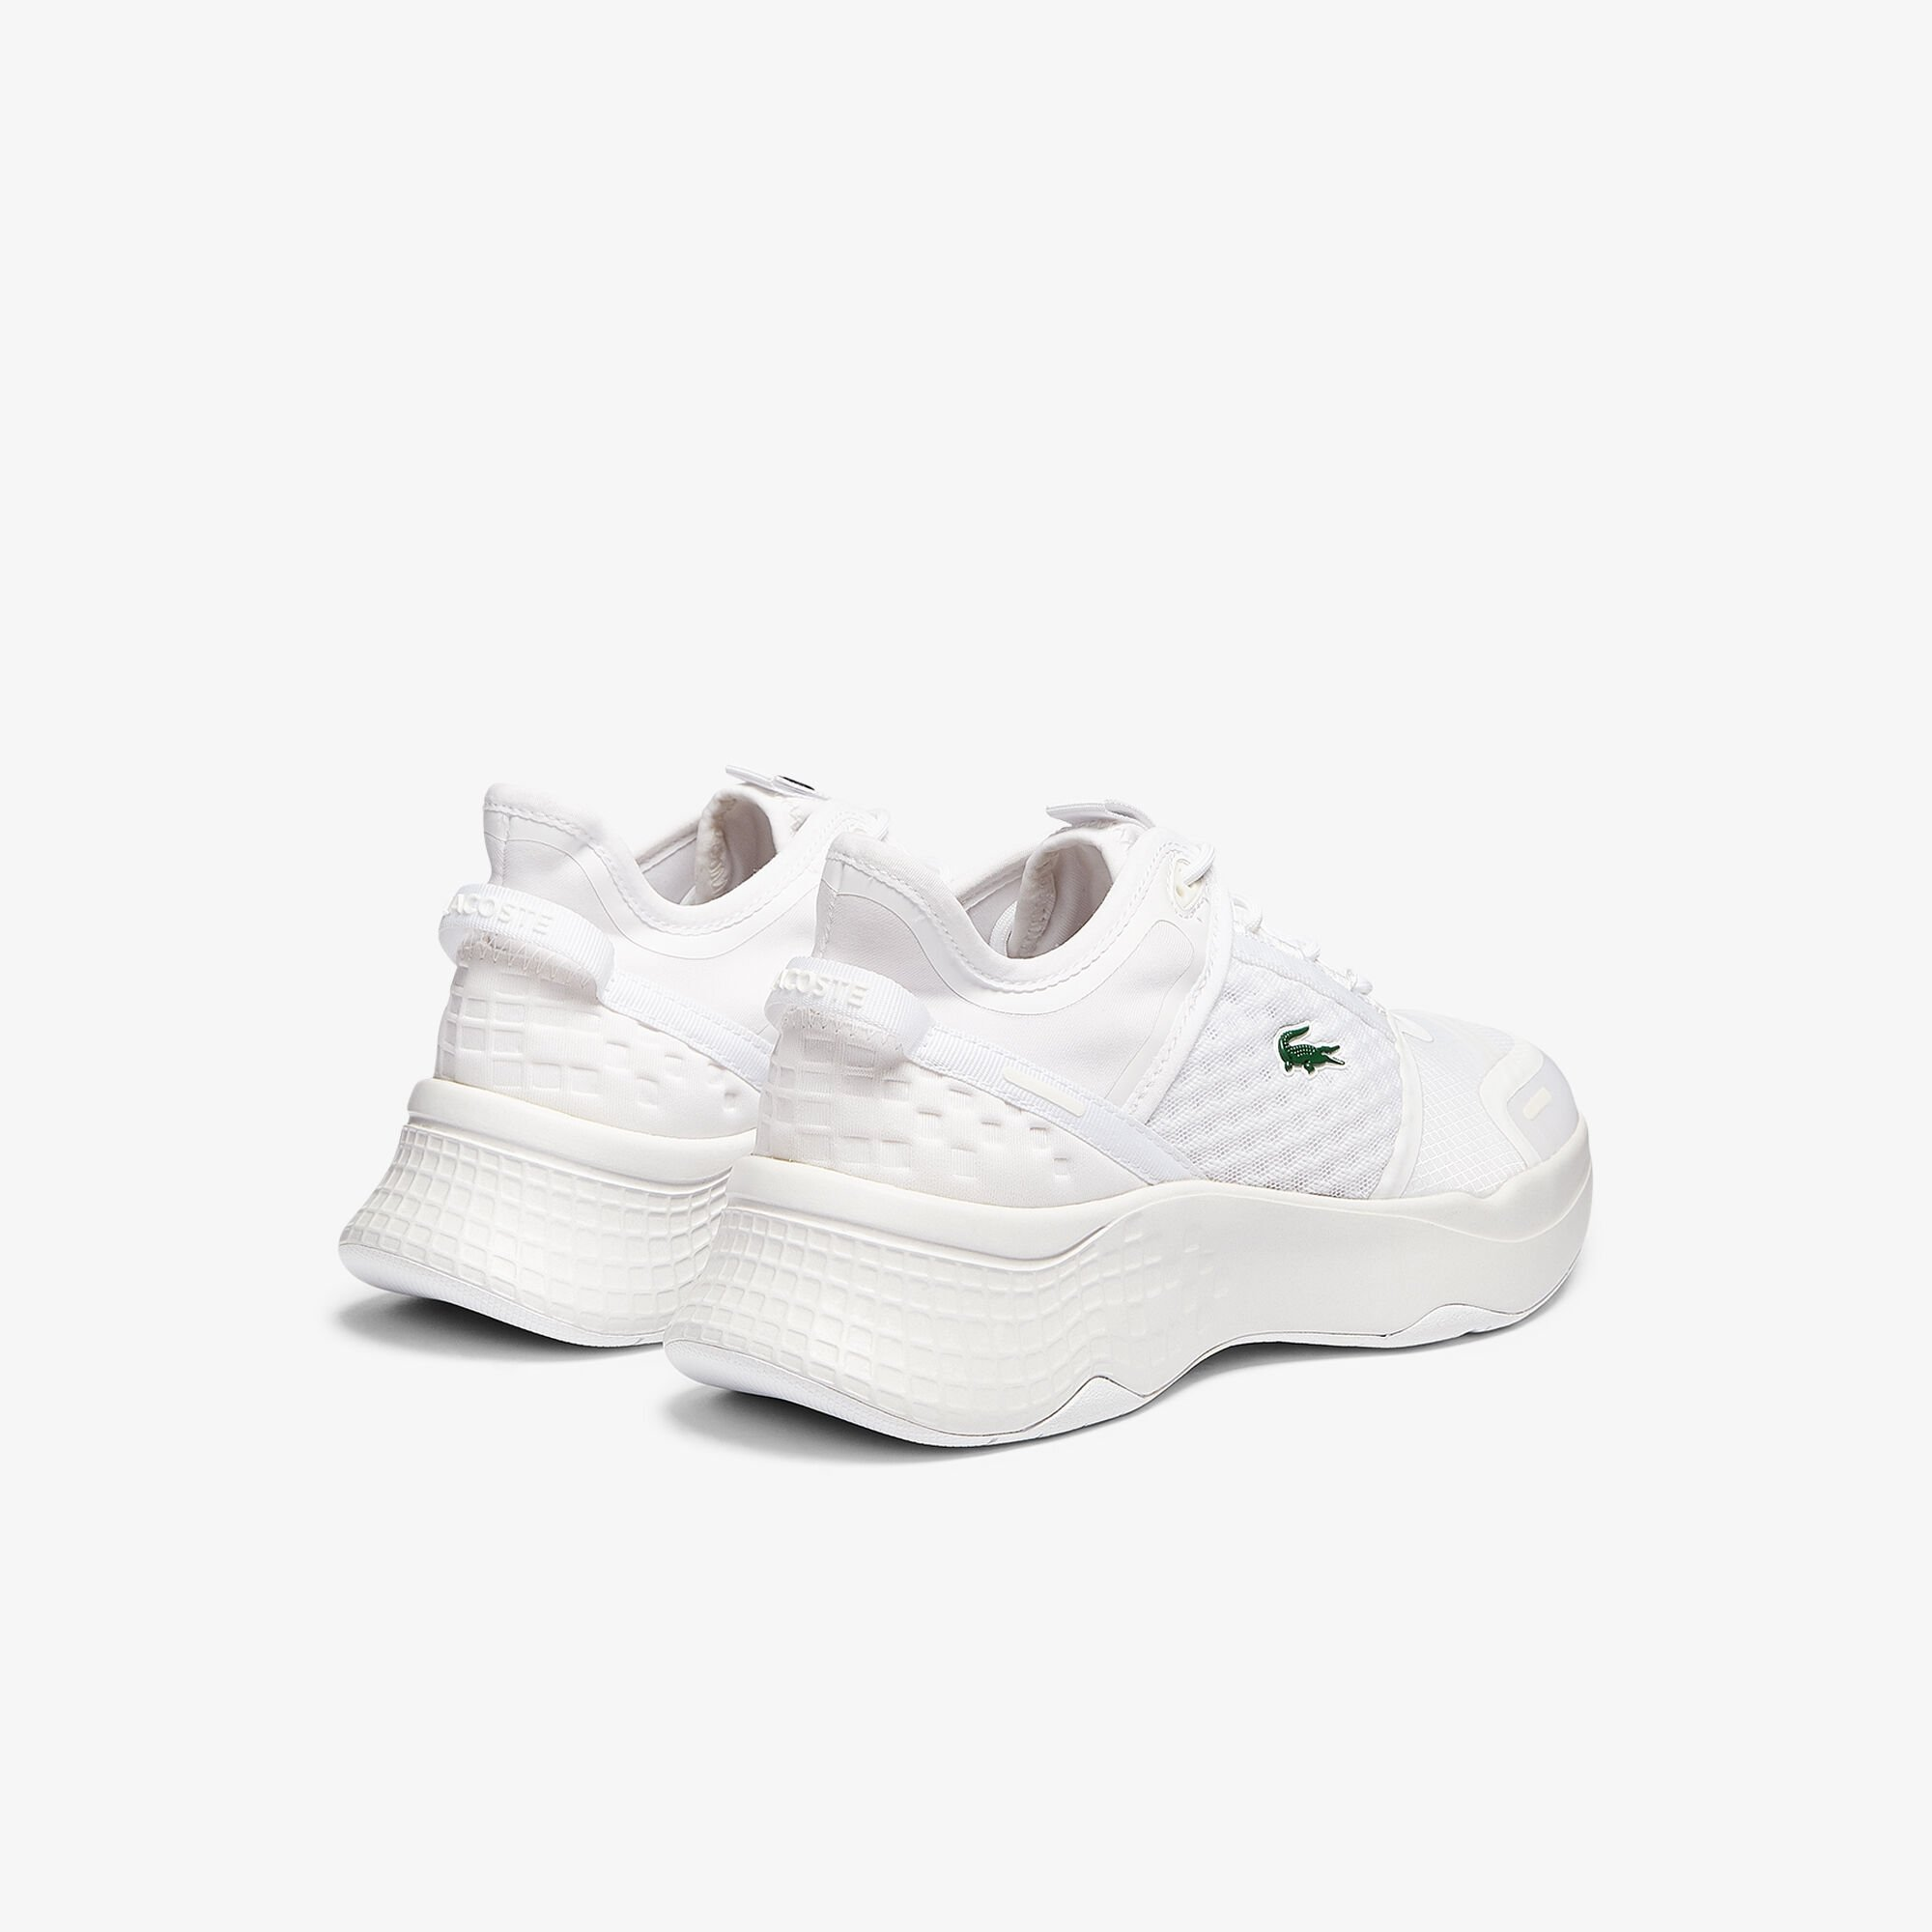 Women's Court-Drive Vantage Textile and TPU Trainers